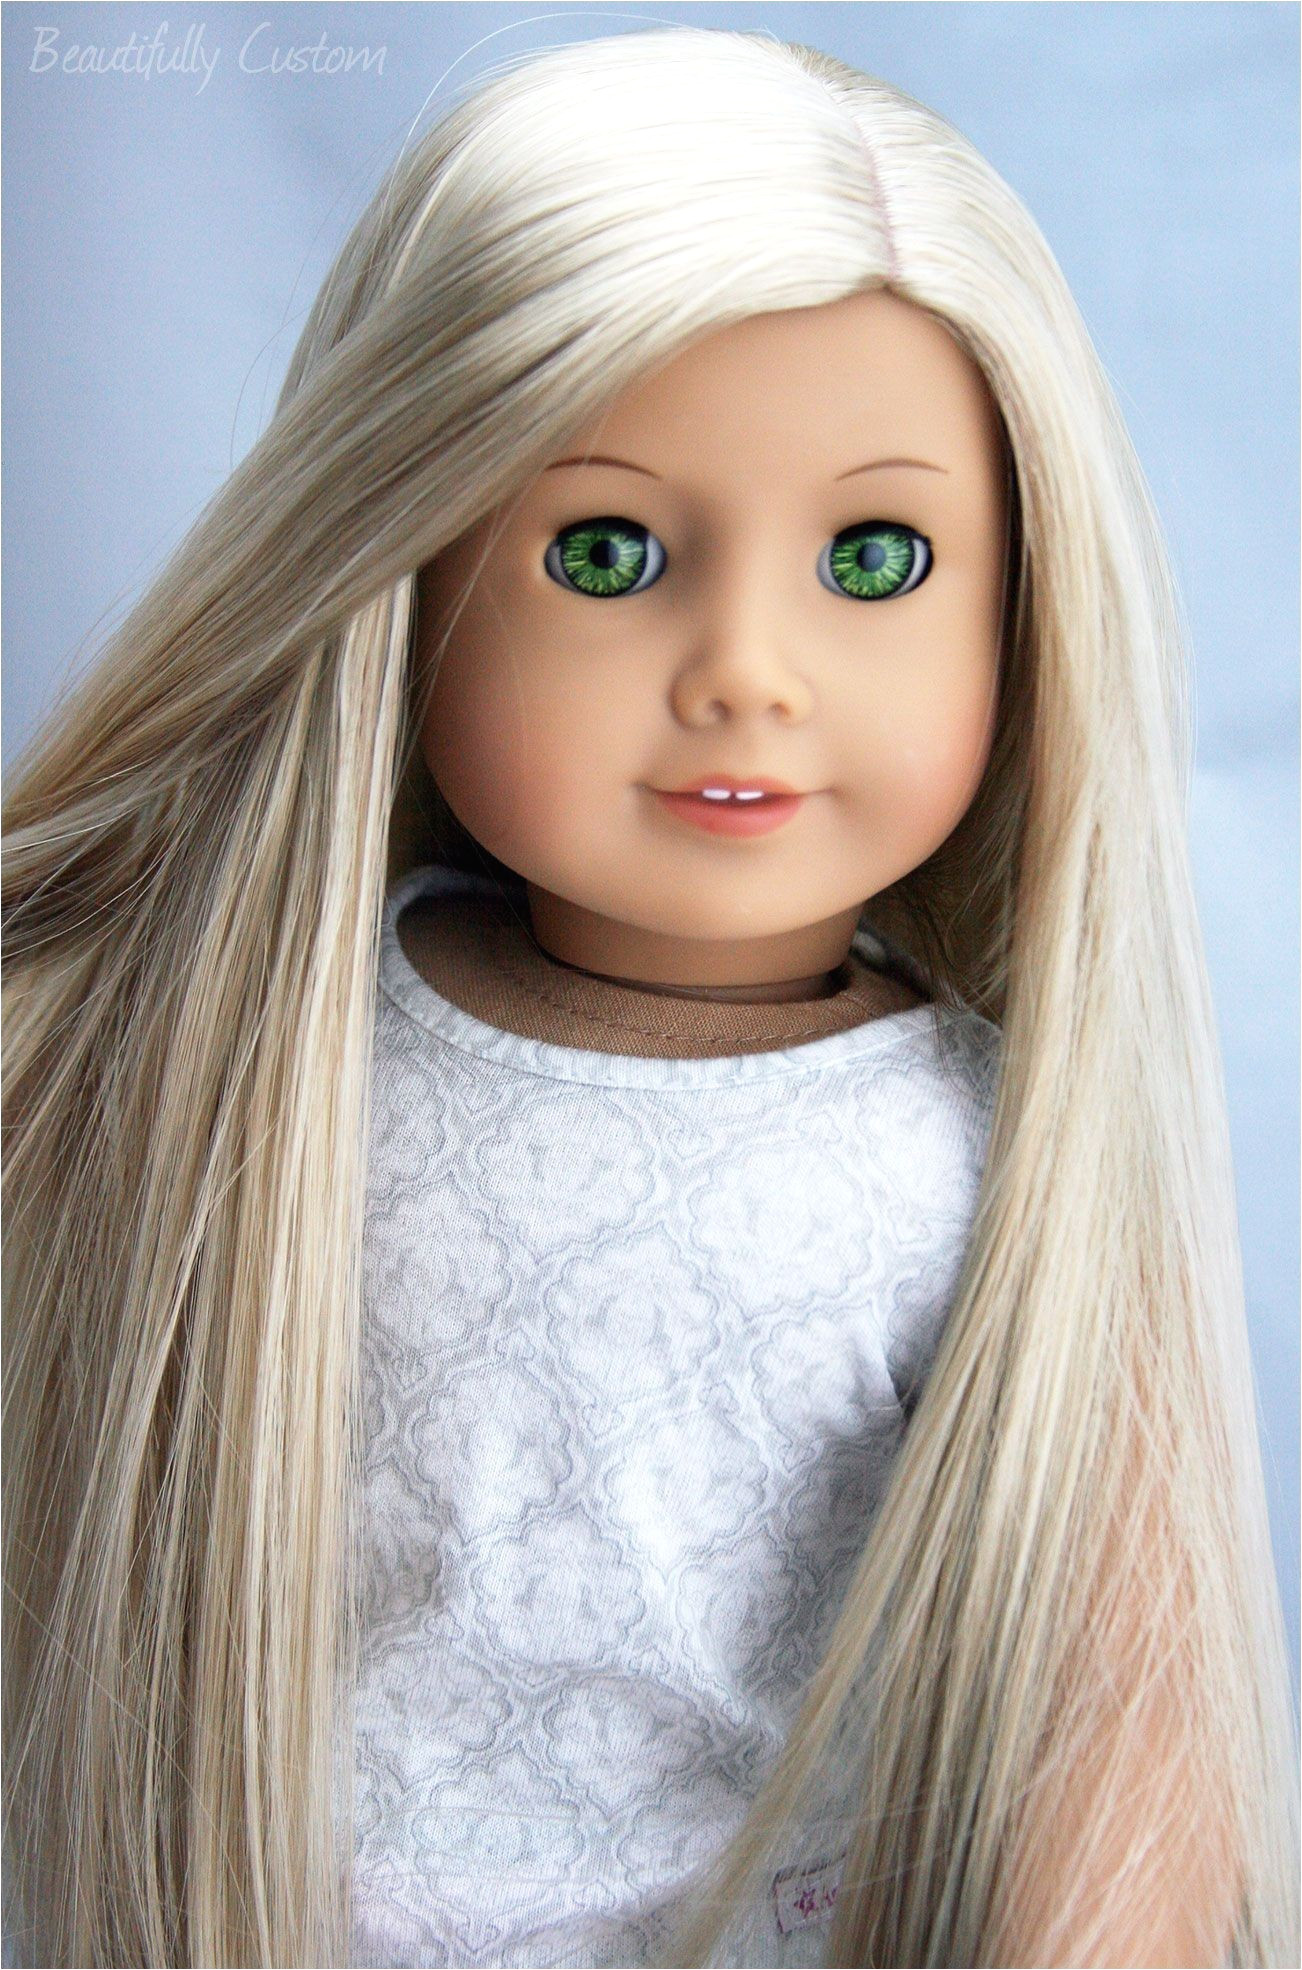 Cute Hairstyles for American Girl Dolls with Long Hair Elegant Fresh Cool Hairdos for American Girl